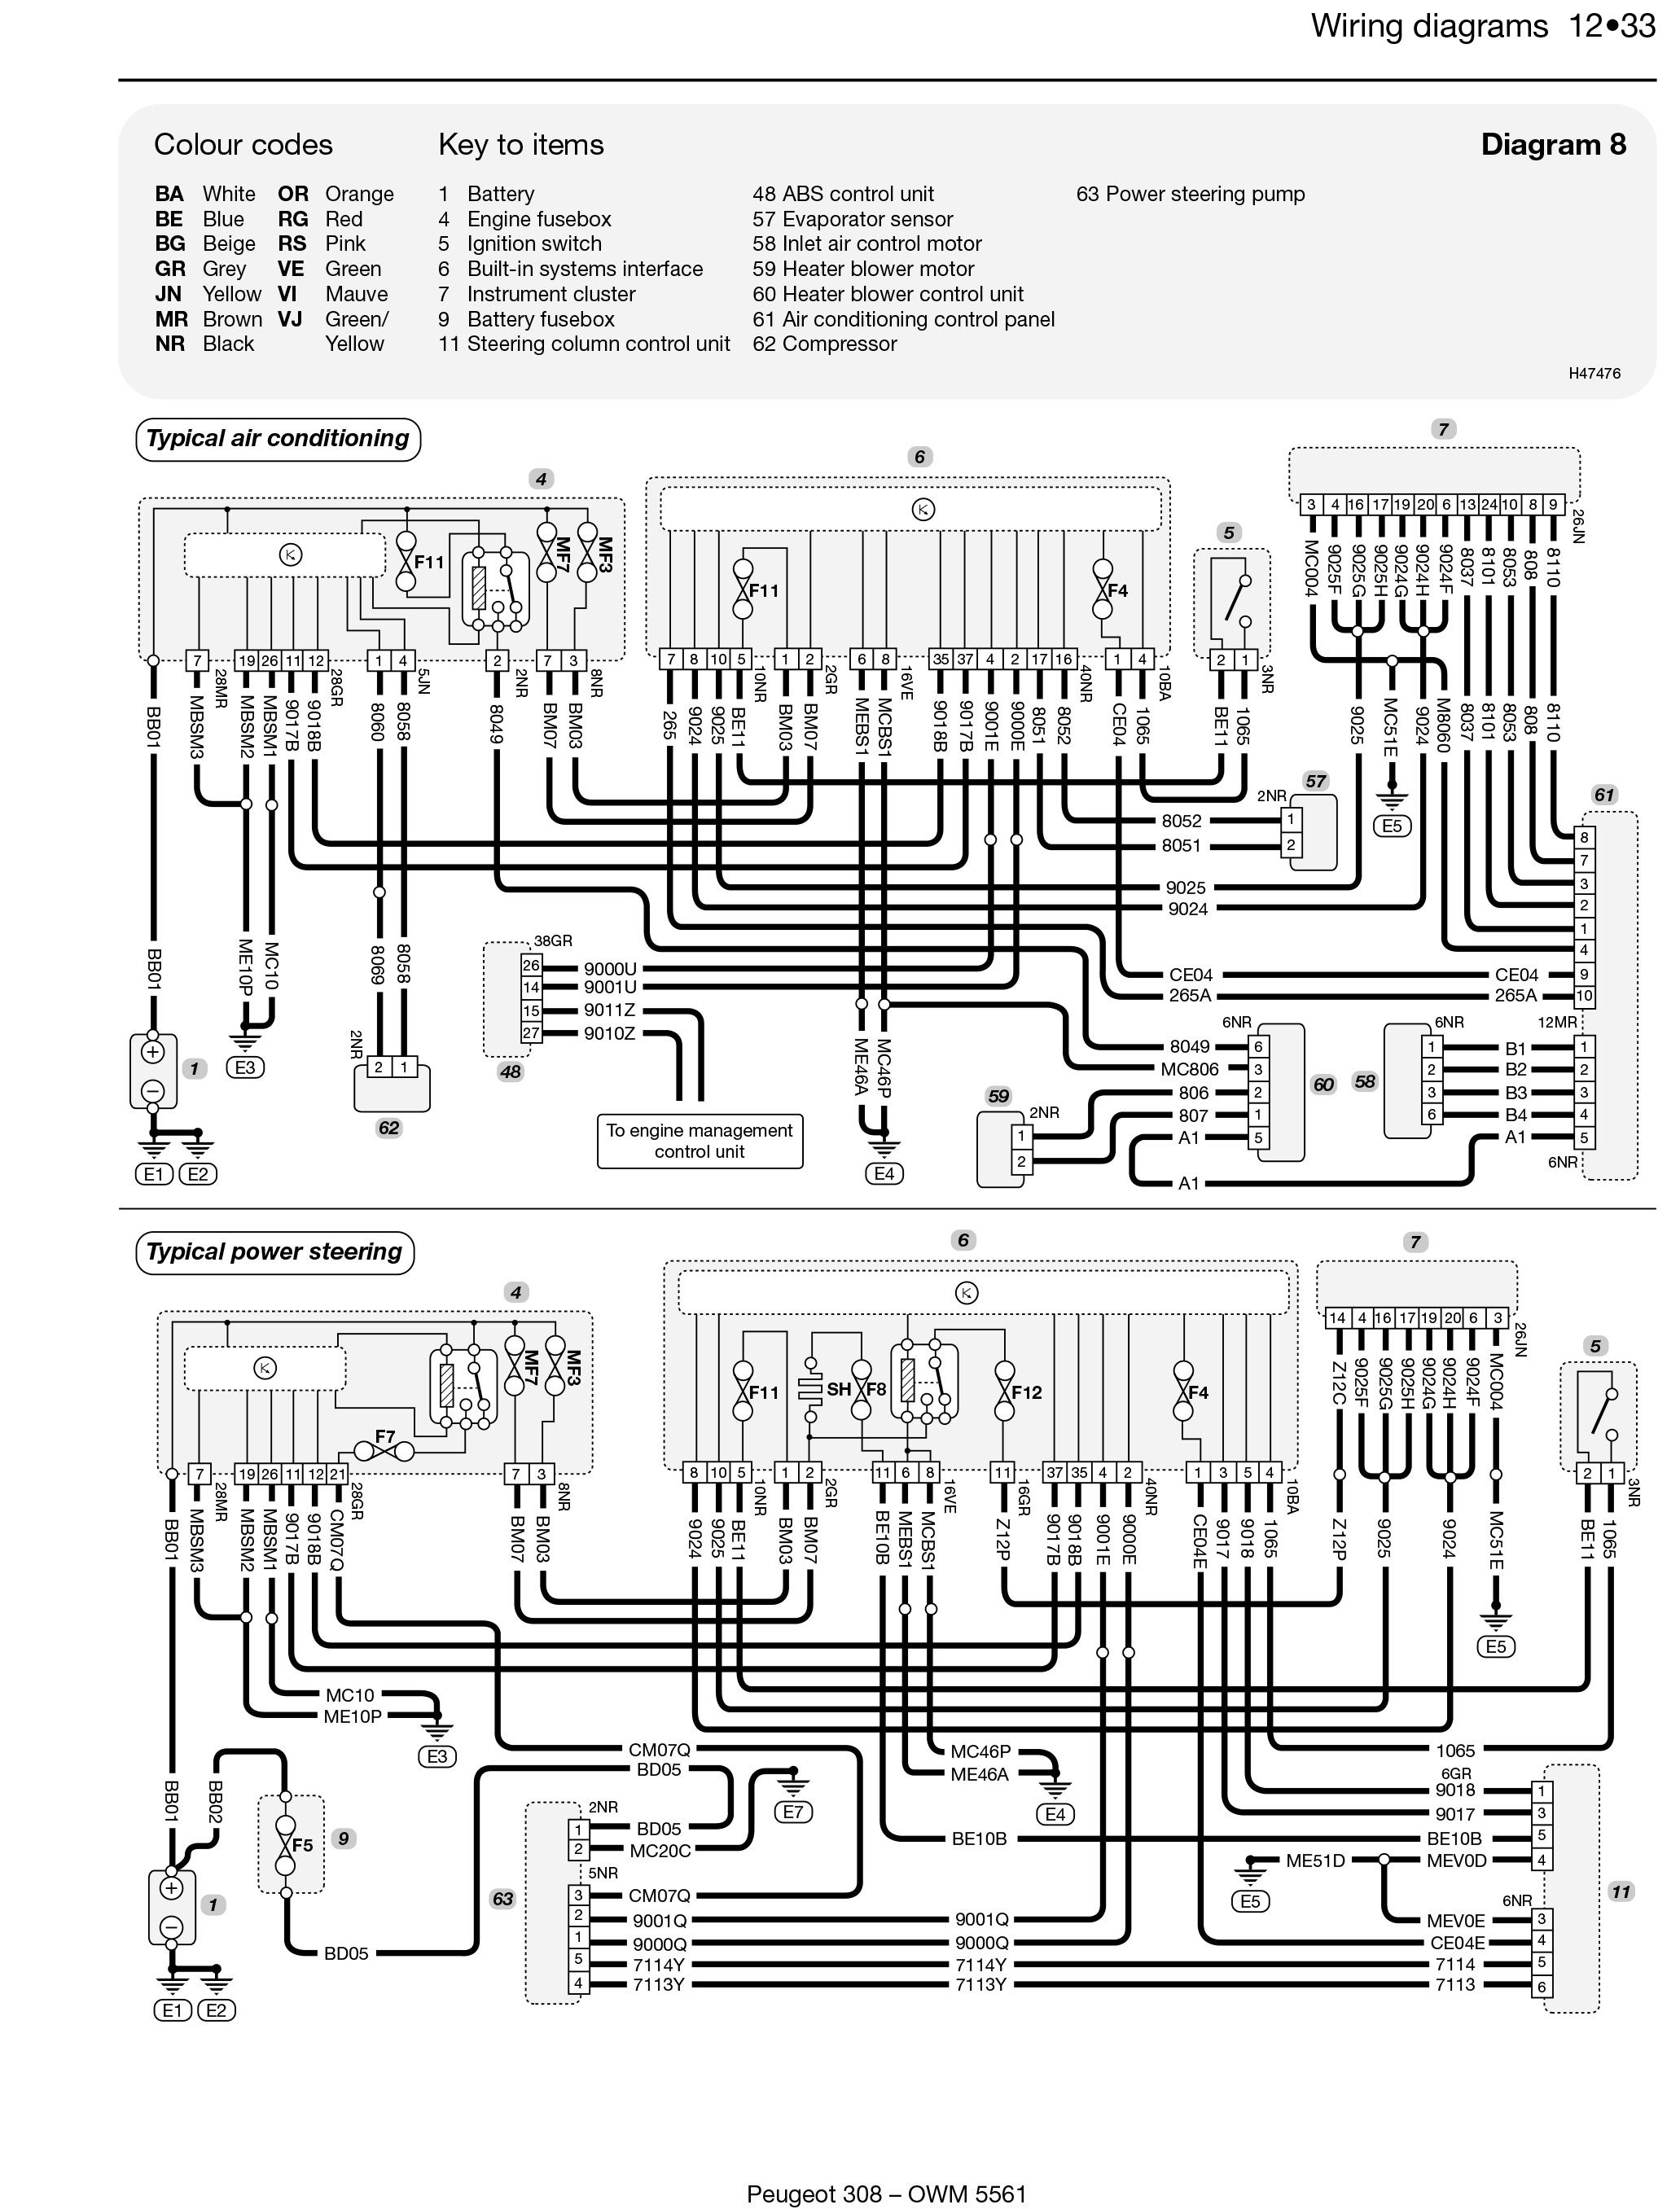 20 Good Haynes Wiring Diagram Legend Ideas Https Bacamajalah Com 20 Good Haynes Wiring Diagram Legend Ideas Diagram Diagram Electrical Symbols Peugeot